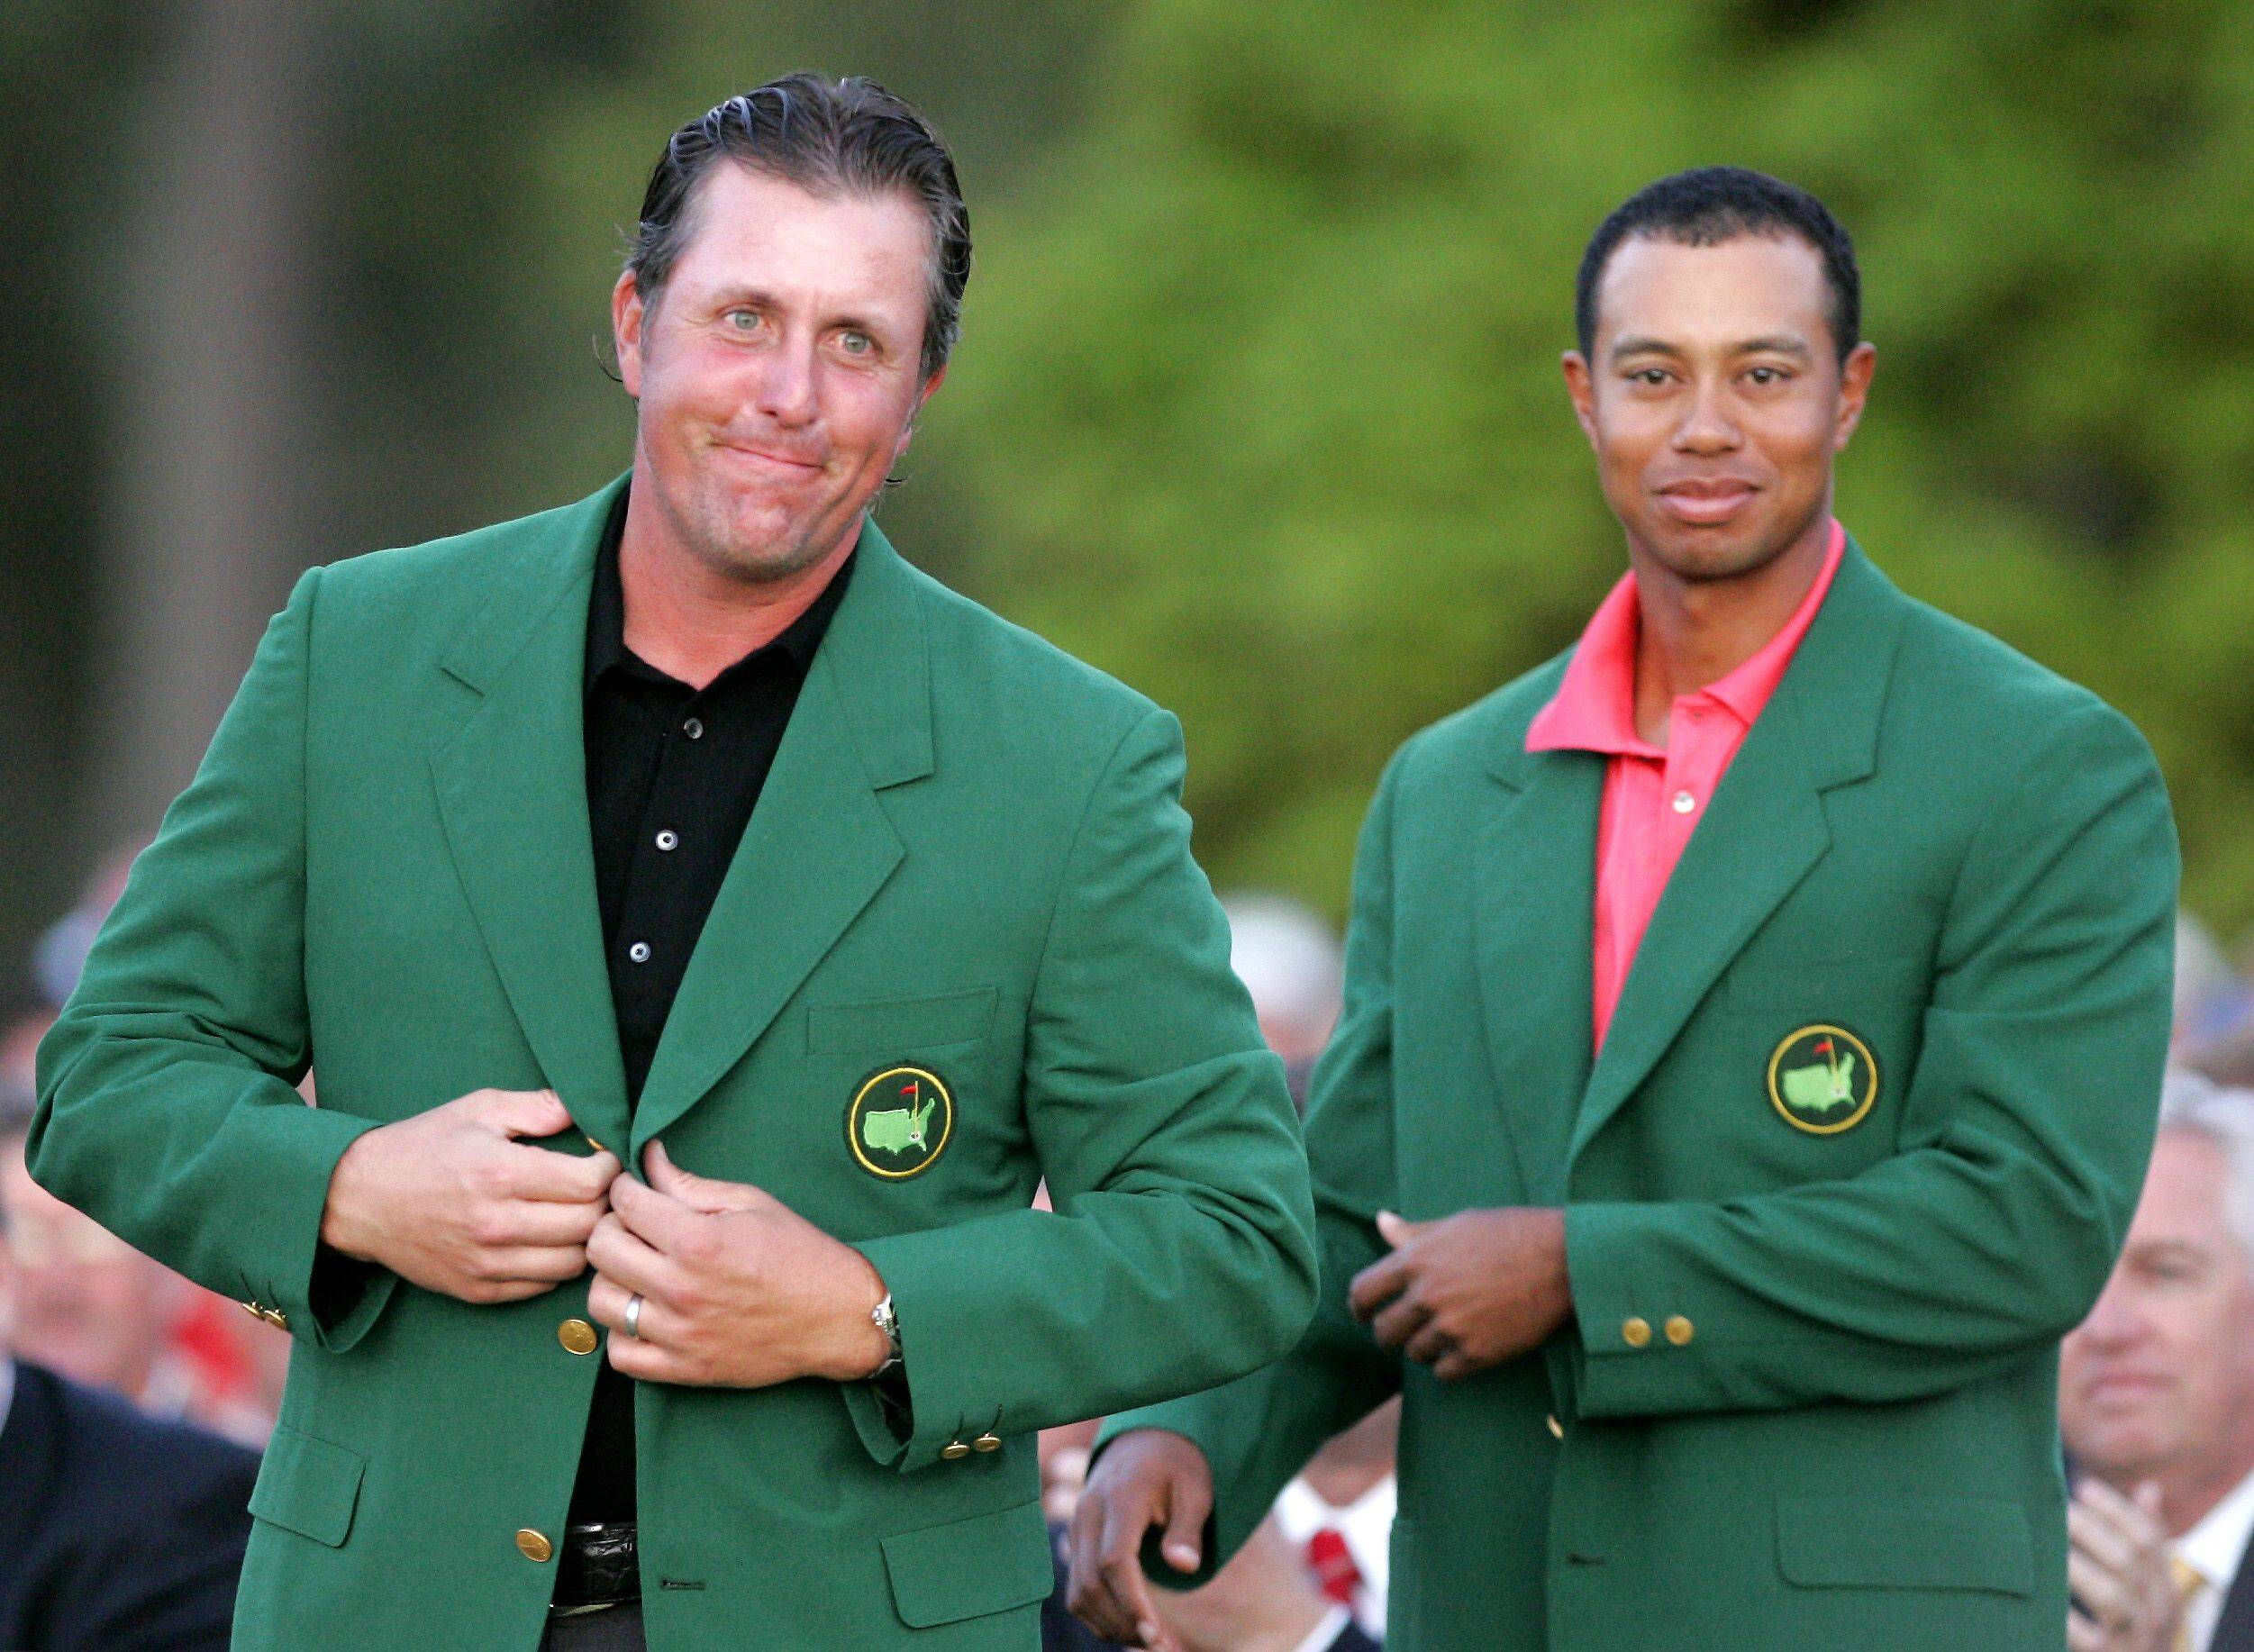 GREEN JACKET - GREENHEART - GREENKEEPER, GREENSKEEPER